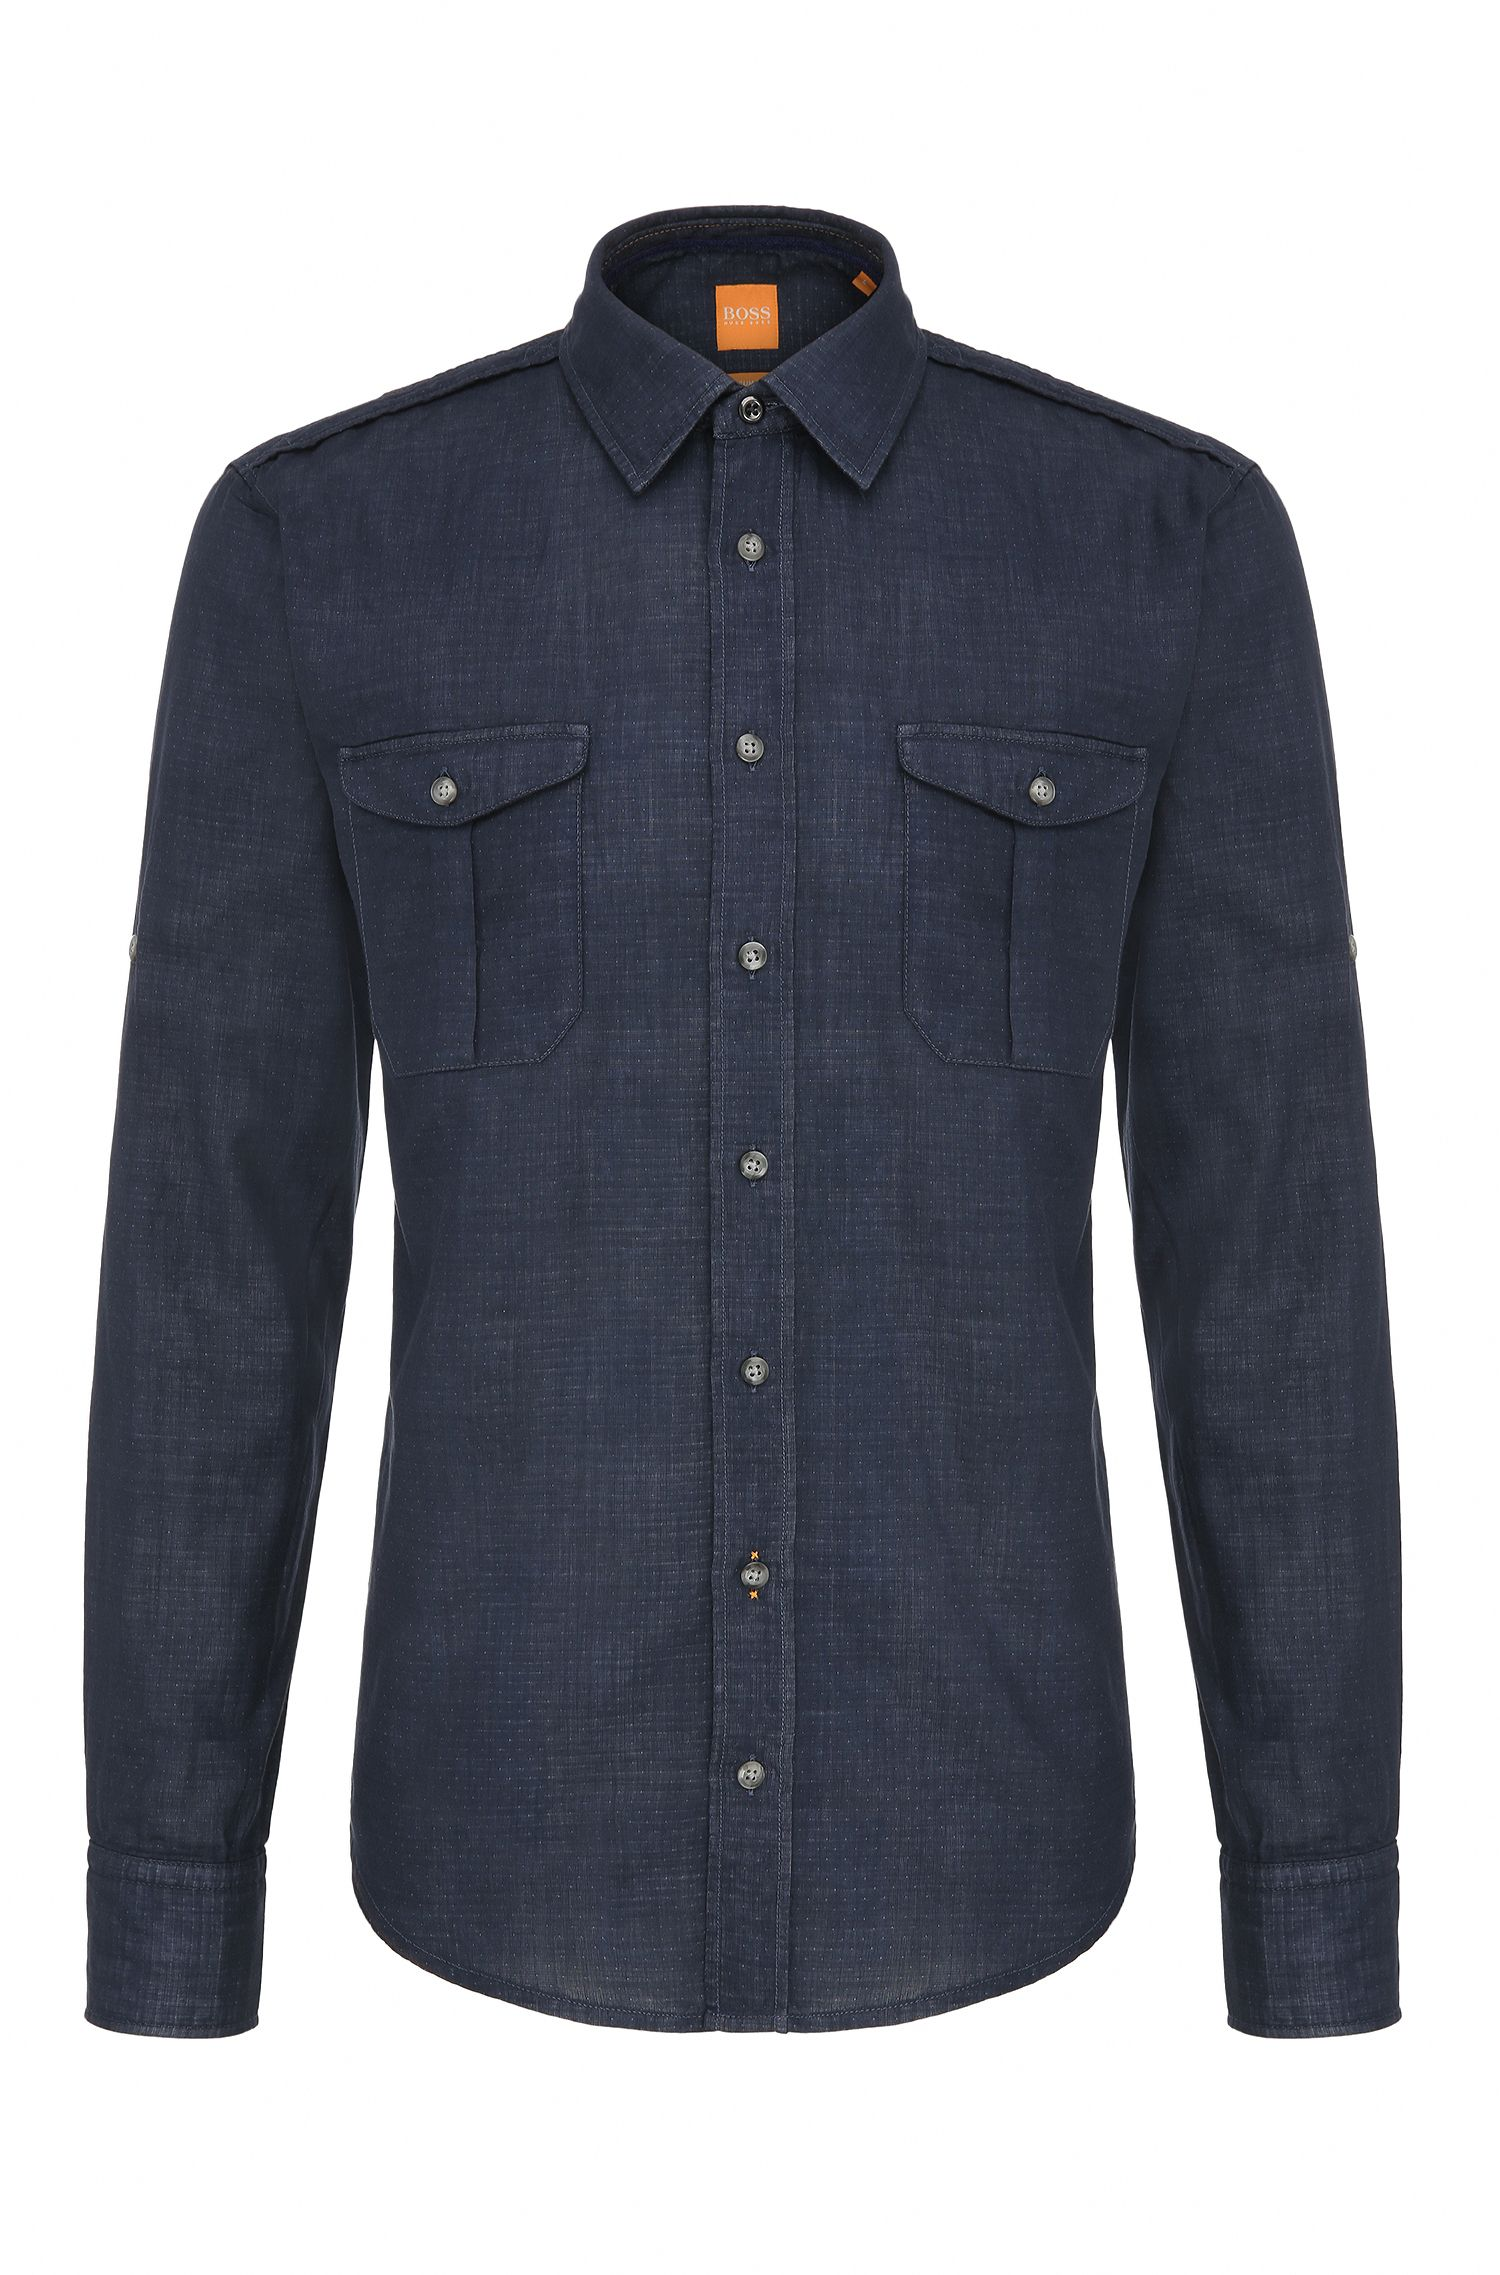 'CadettoE' | Slim Fit, Cotton Button Down Shirt